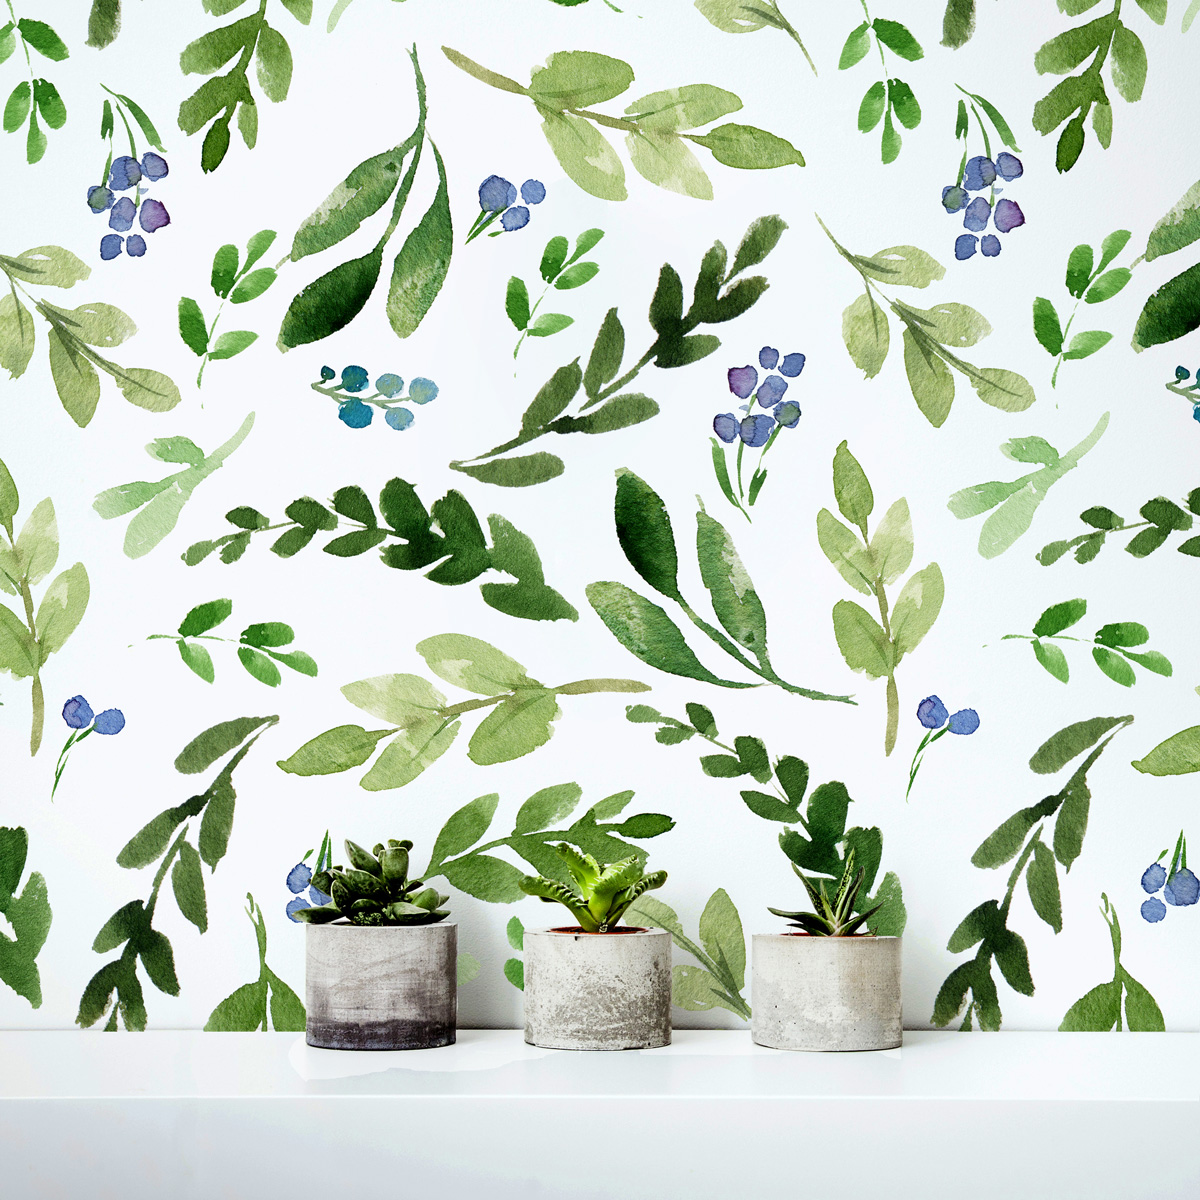 Watercolor Green Leaves Repositionable Wallpaper